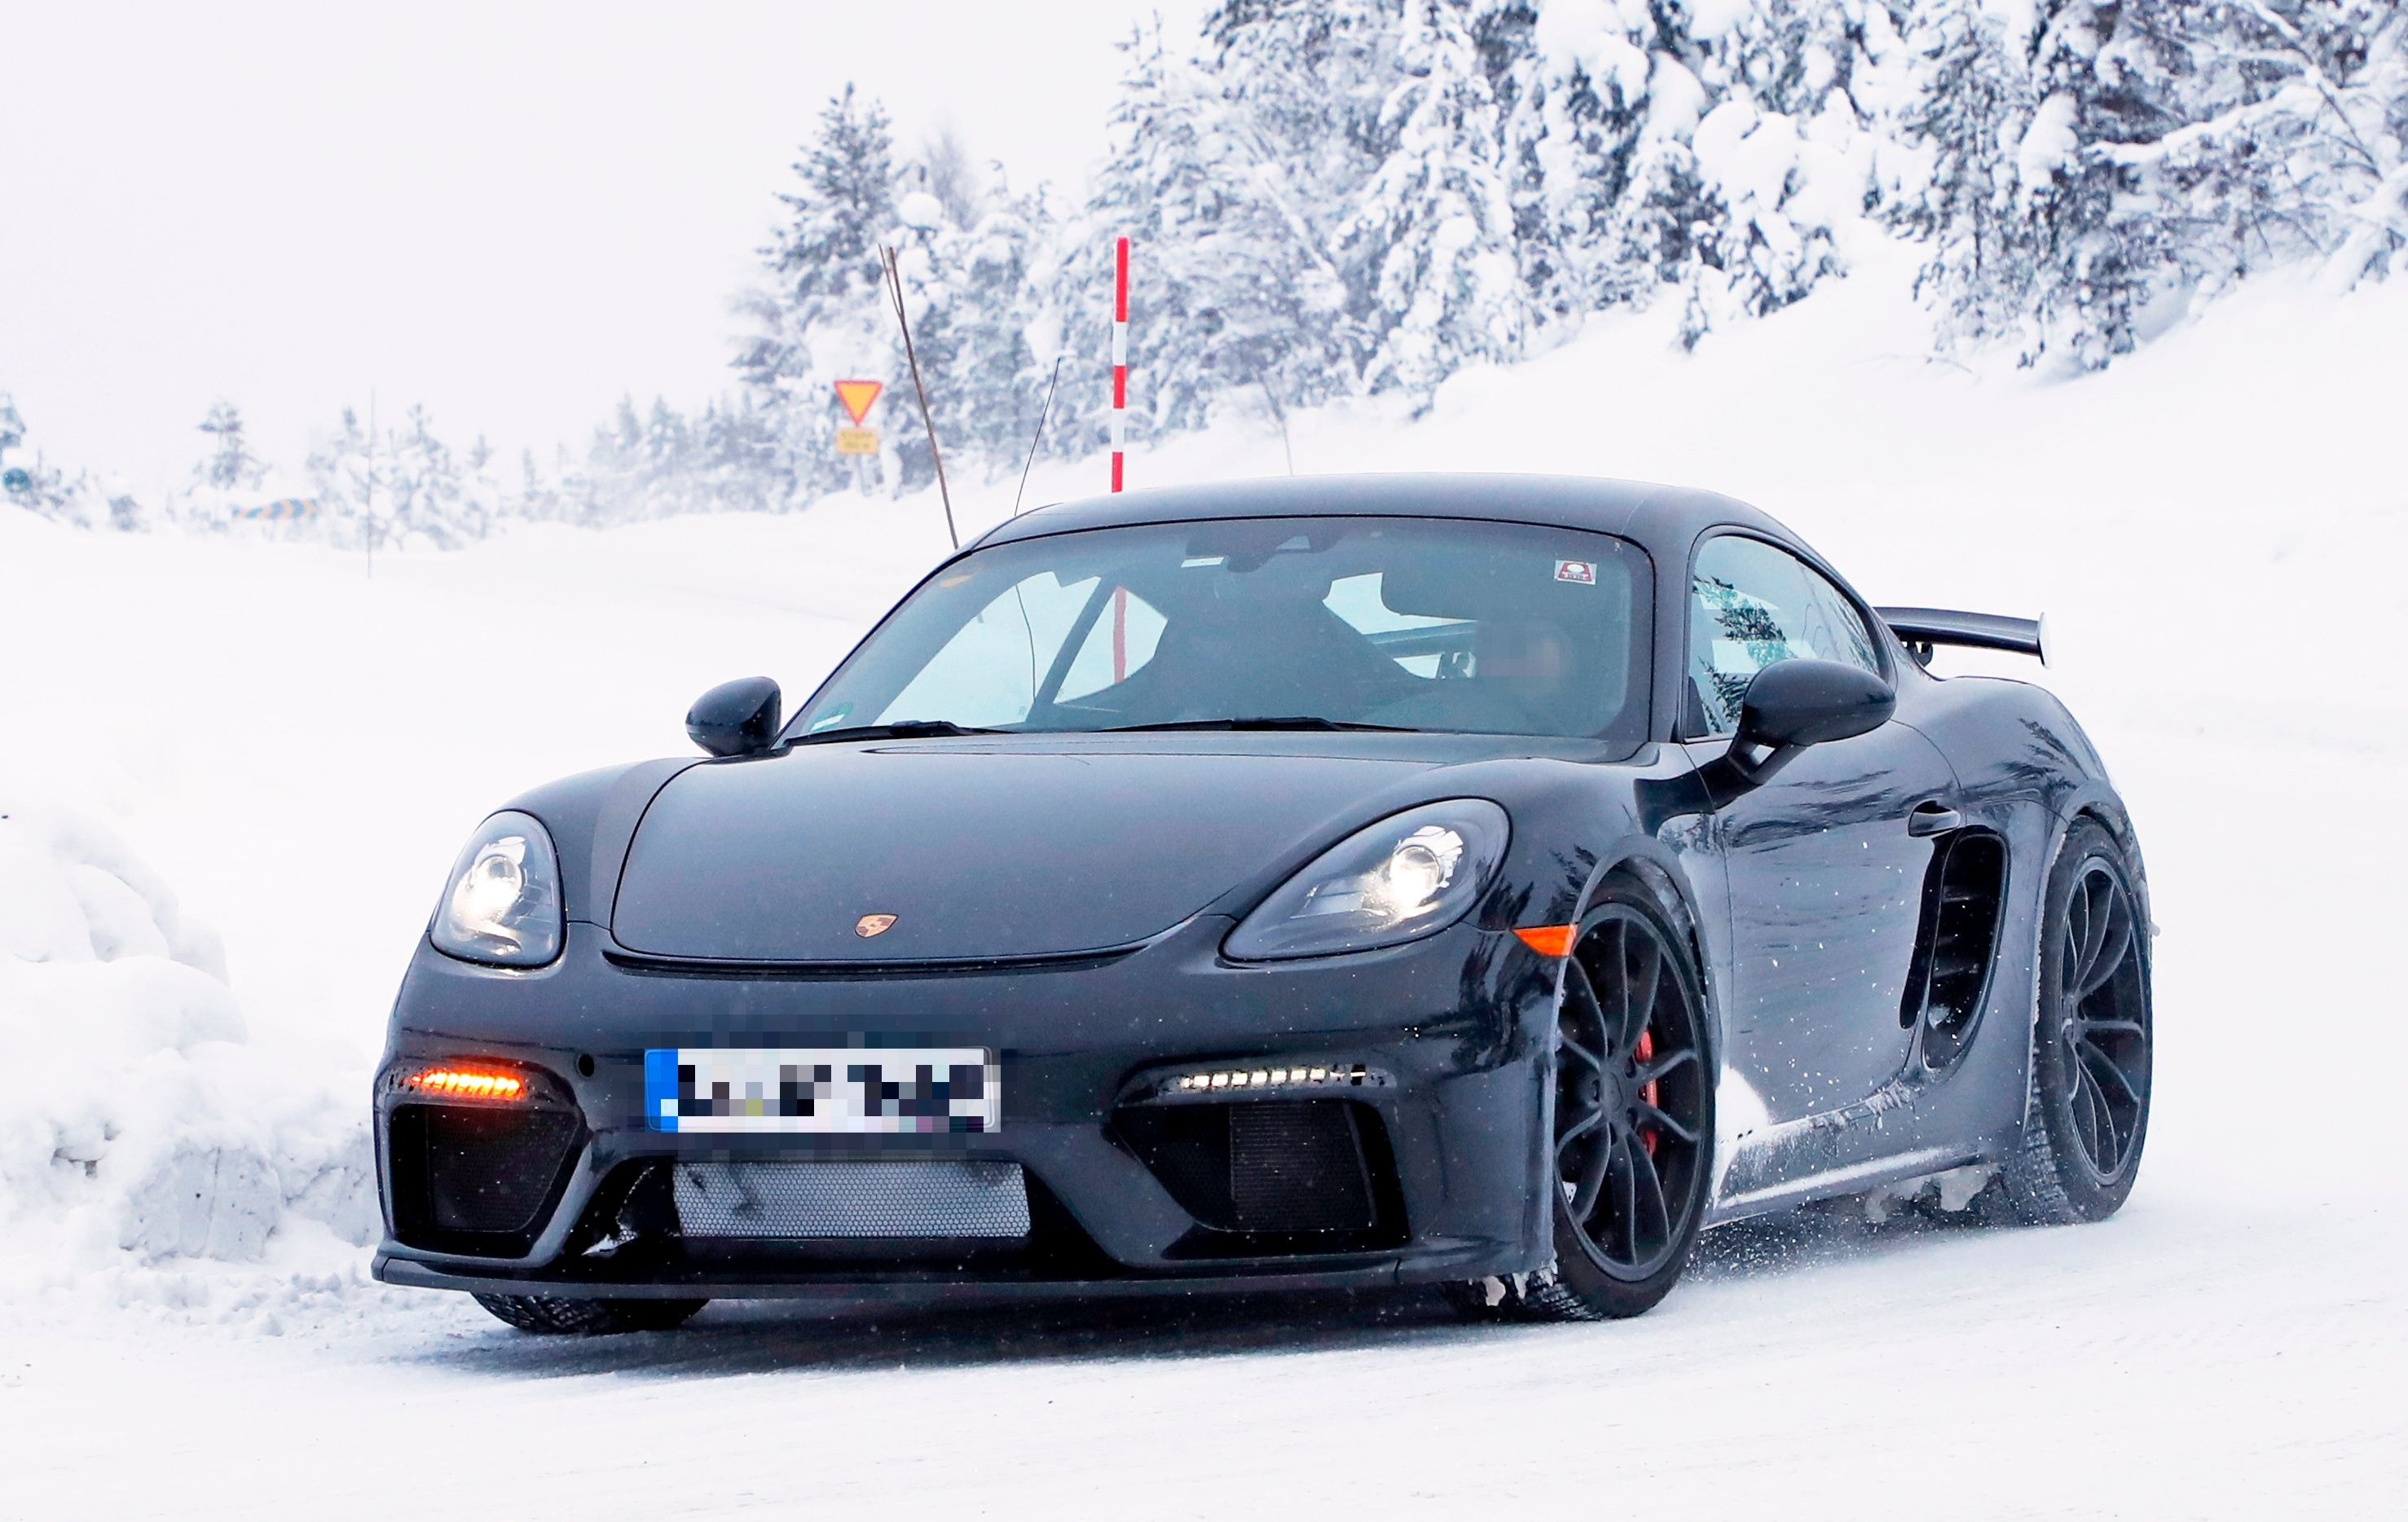 2019 porsche cayman gts 2019 Porsche 718 Cayman GT4 Spied in Production Trim, 911 GT3  2019 porsche cayman gts